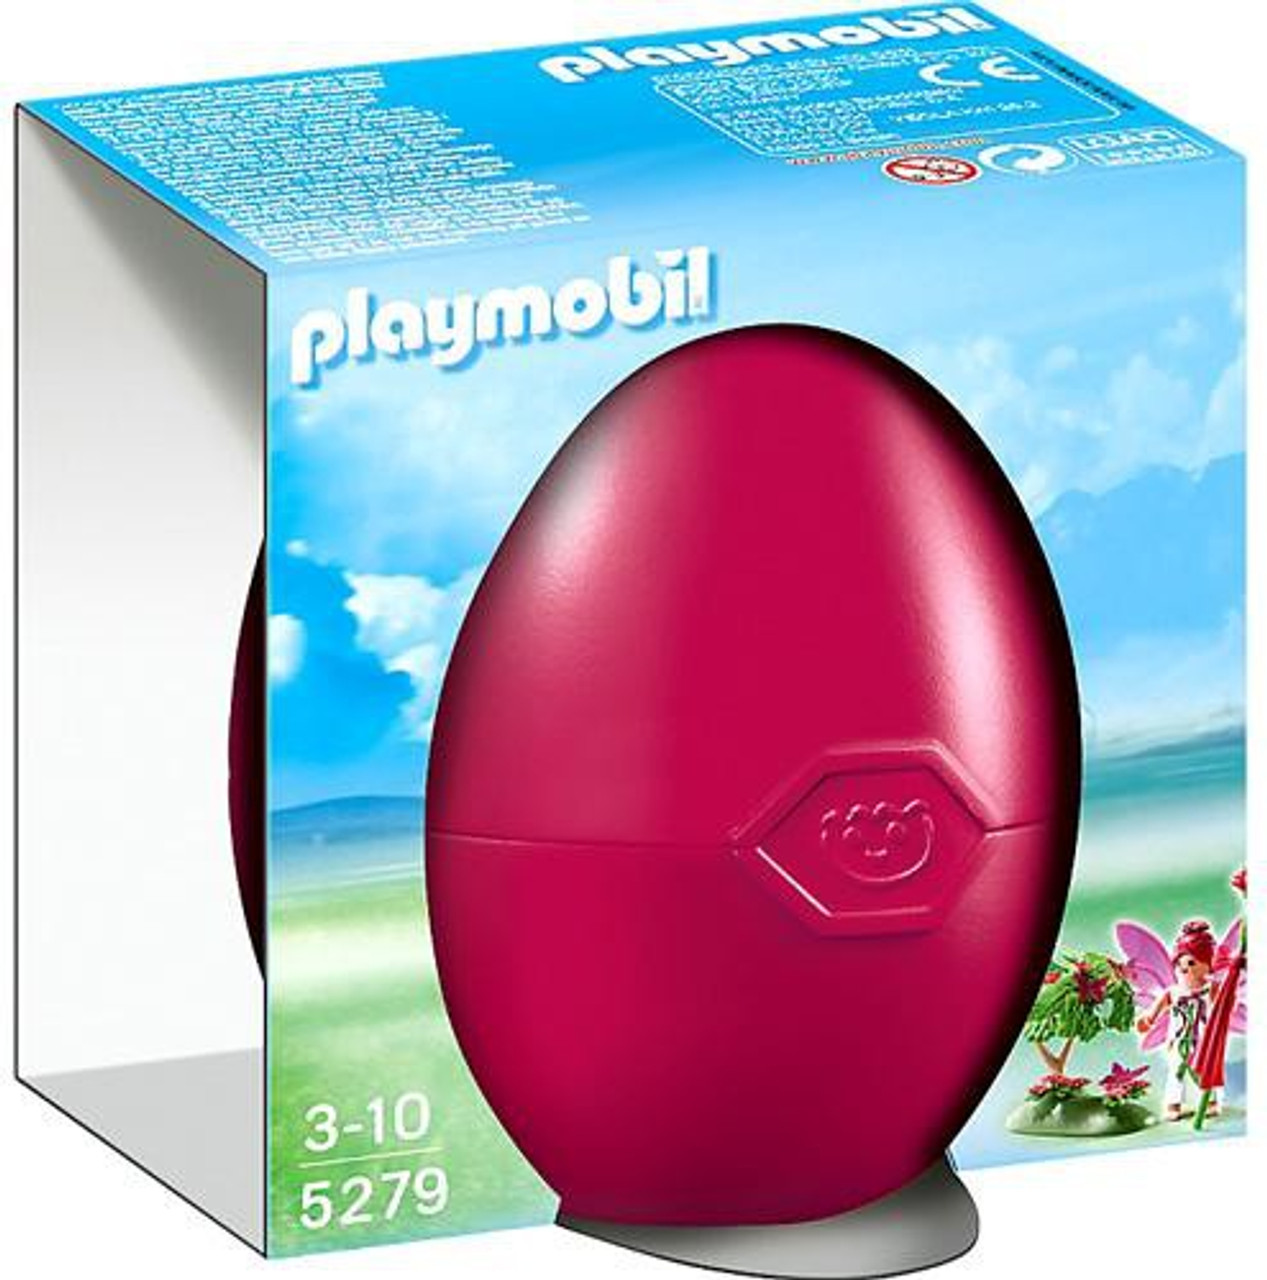 Playmobil Egg Flower Fairy with Enchanted Tree Set #5279